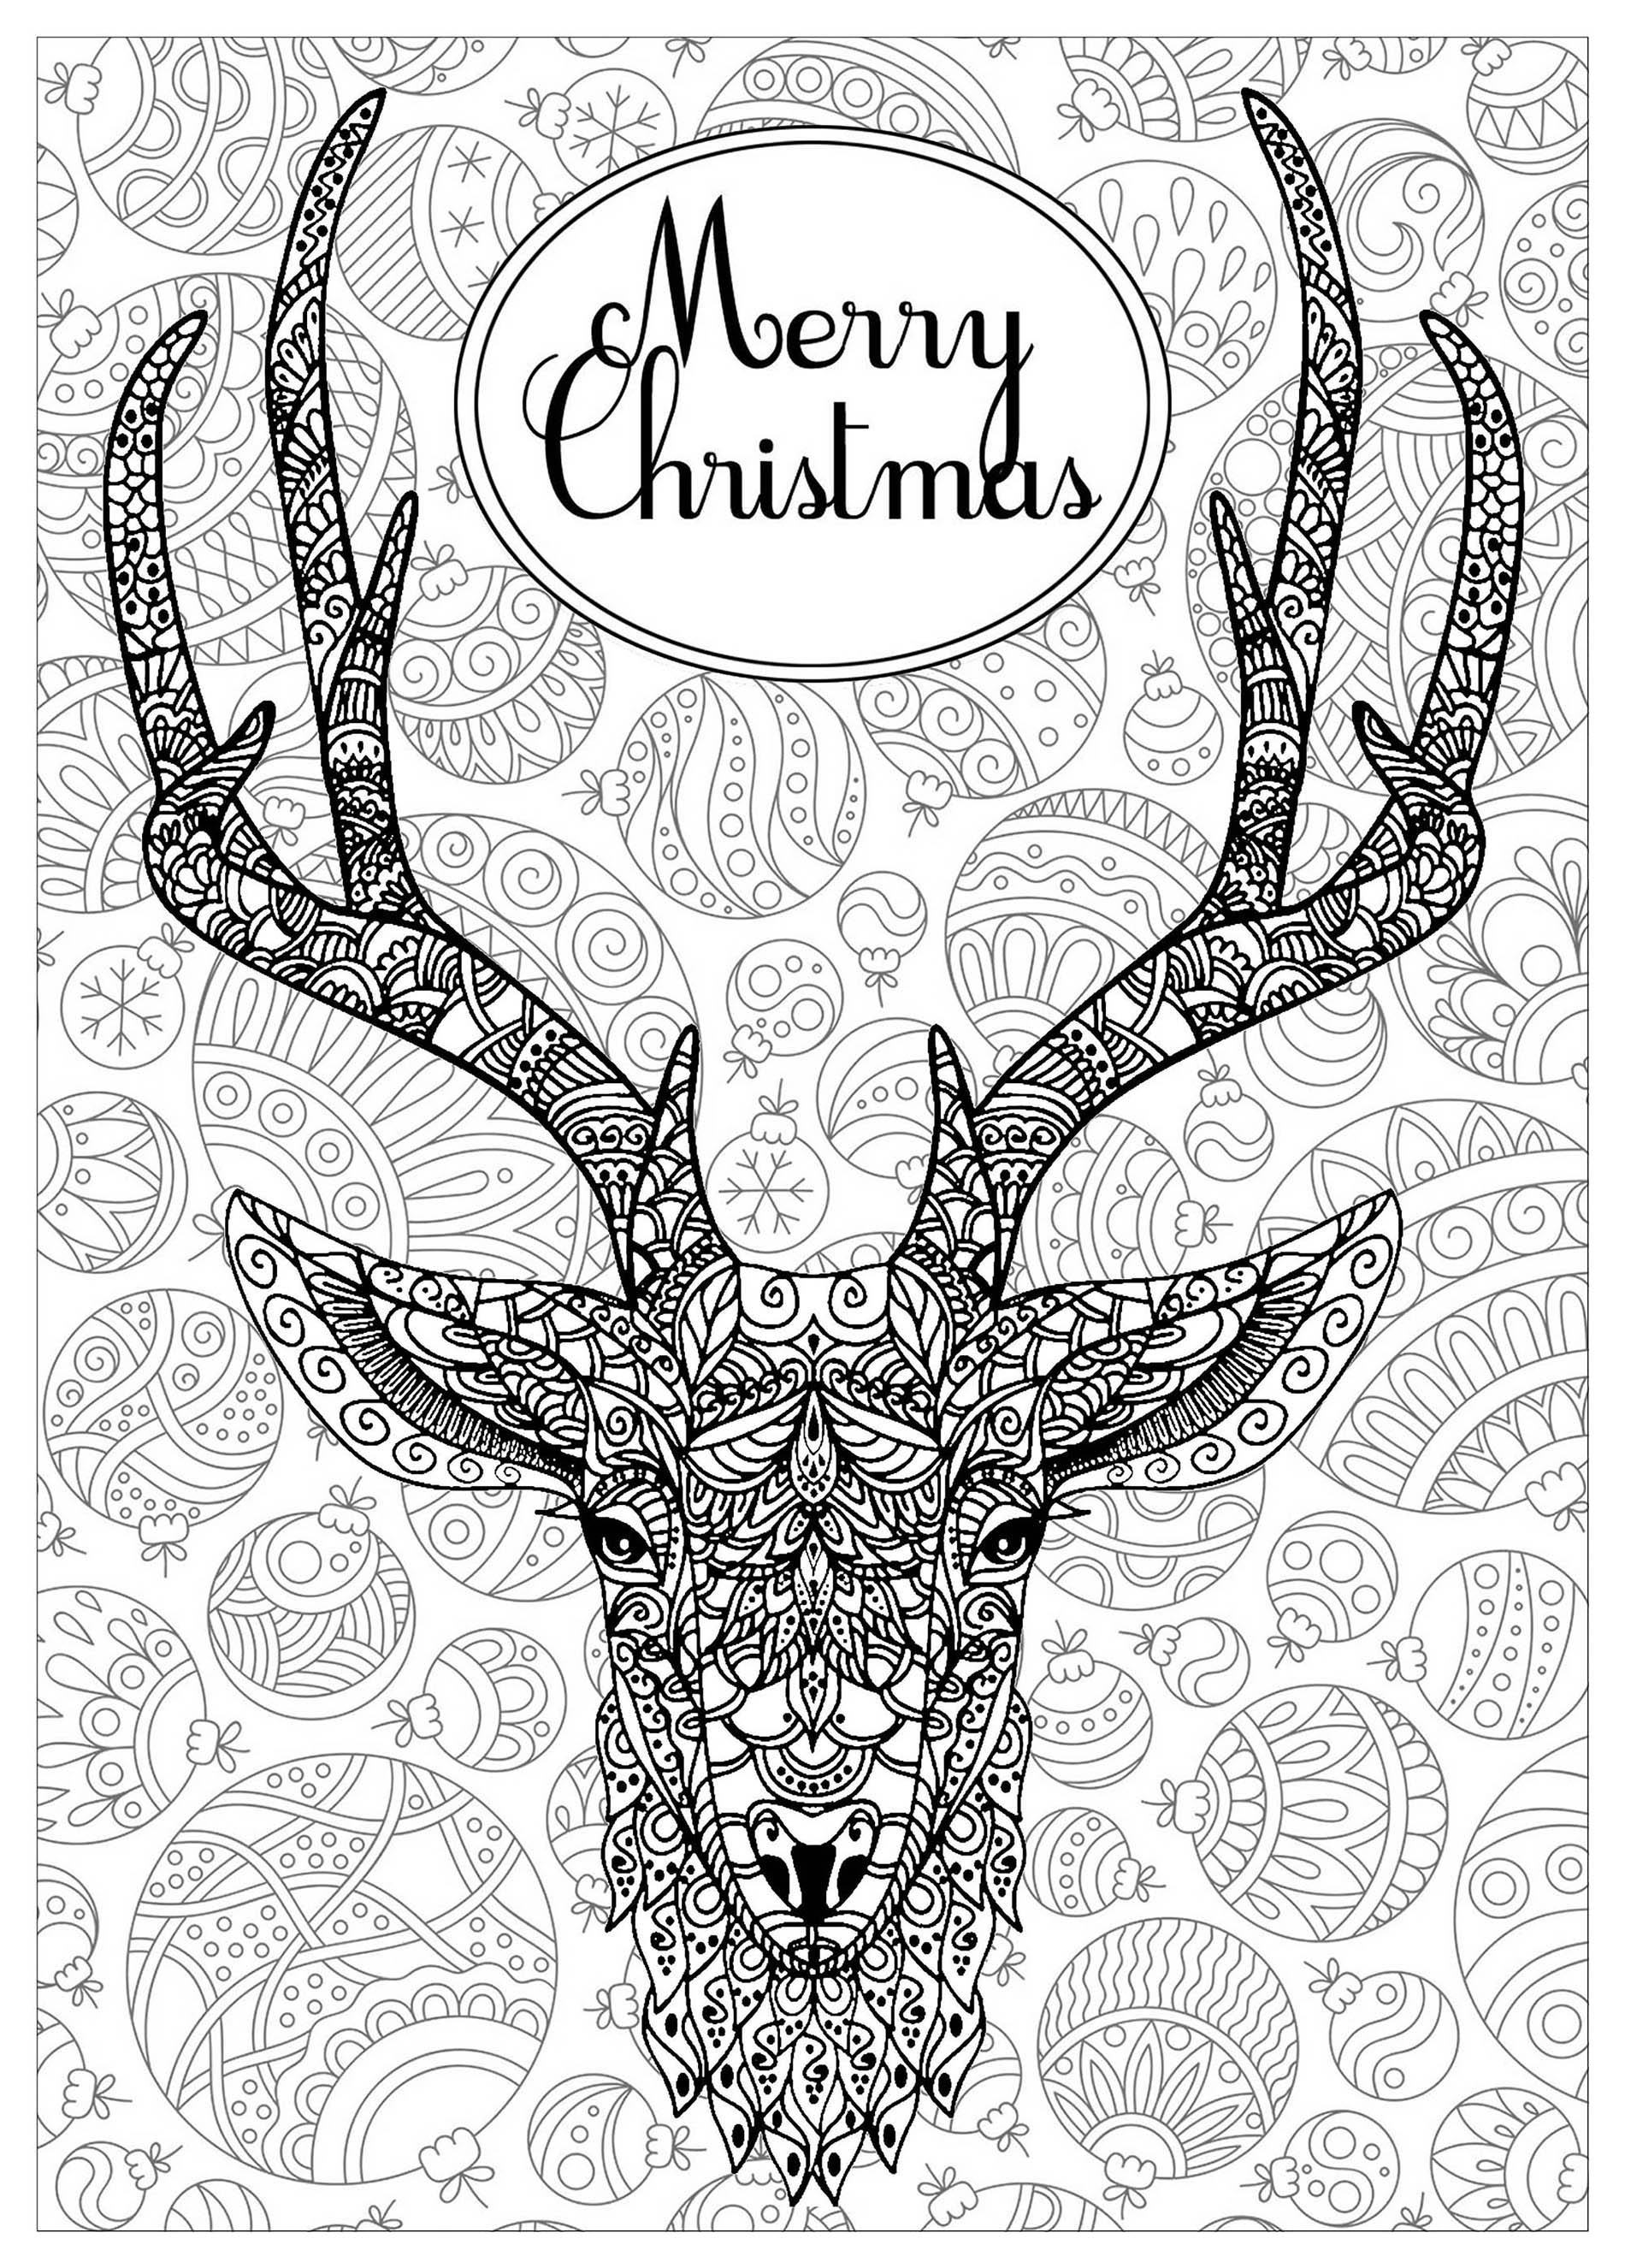 Deer with text and background - Christmas Adult Coloring Pages